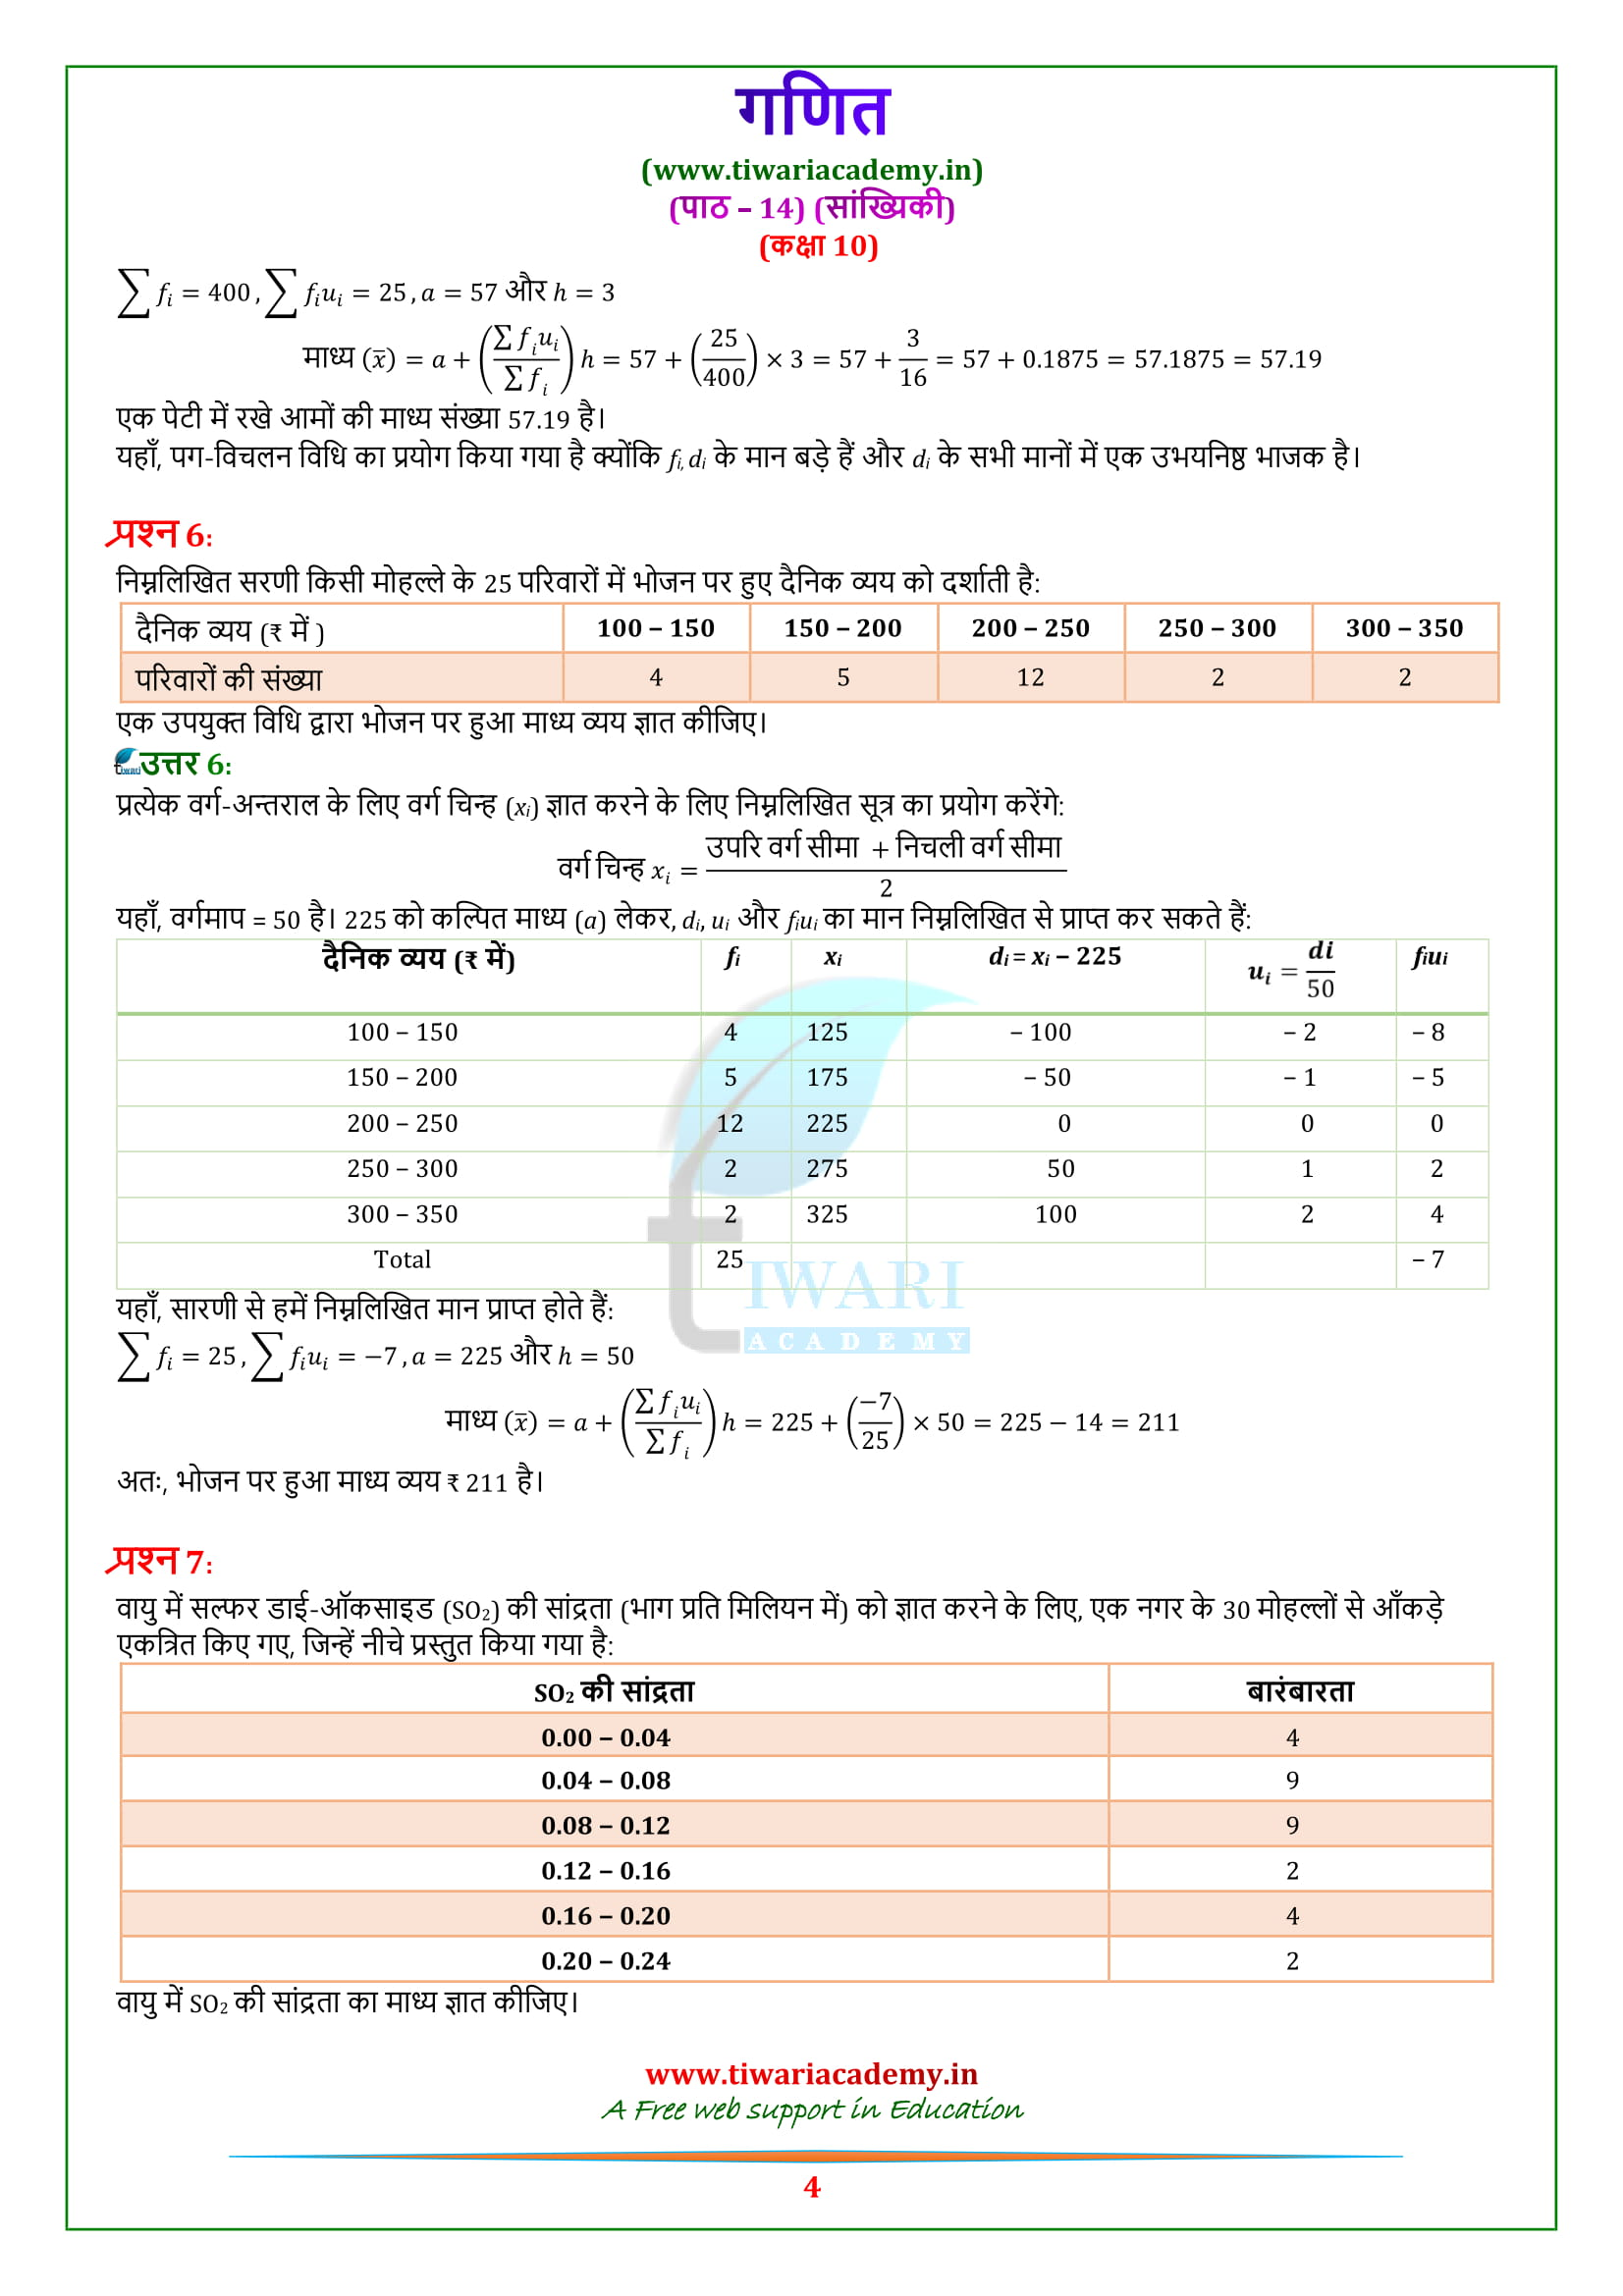 10 Maths Exercise 14.1 Solutions free for all students in hindi